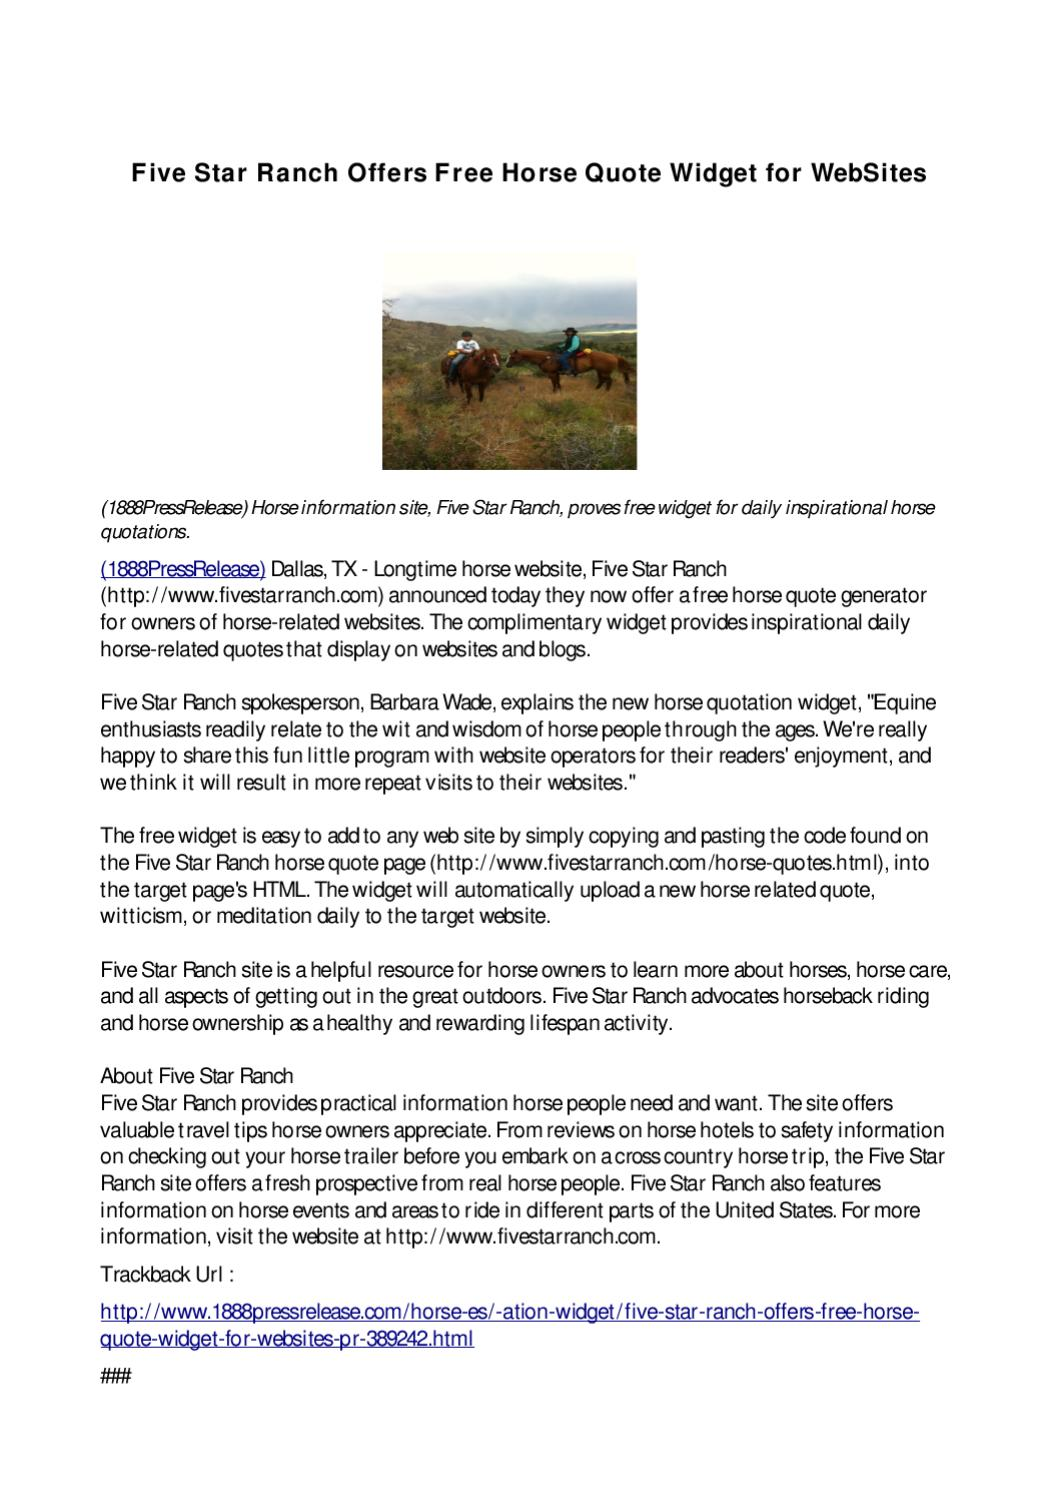 Five Star Ranch Offers Free Horse Quote Widget For Websites By 1888pressrelease Com Issuu